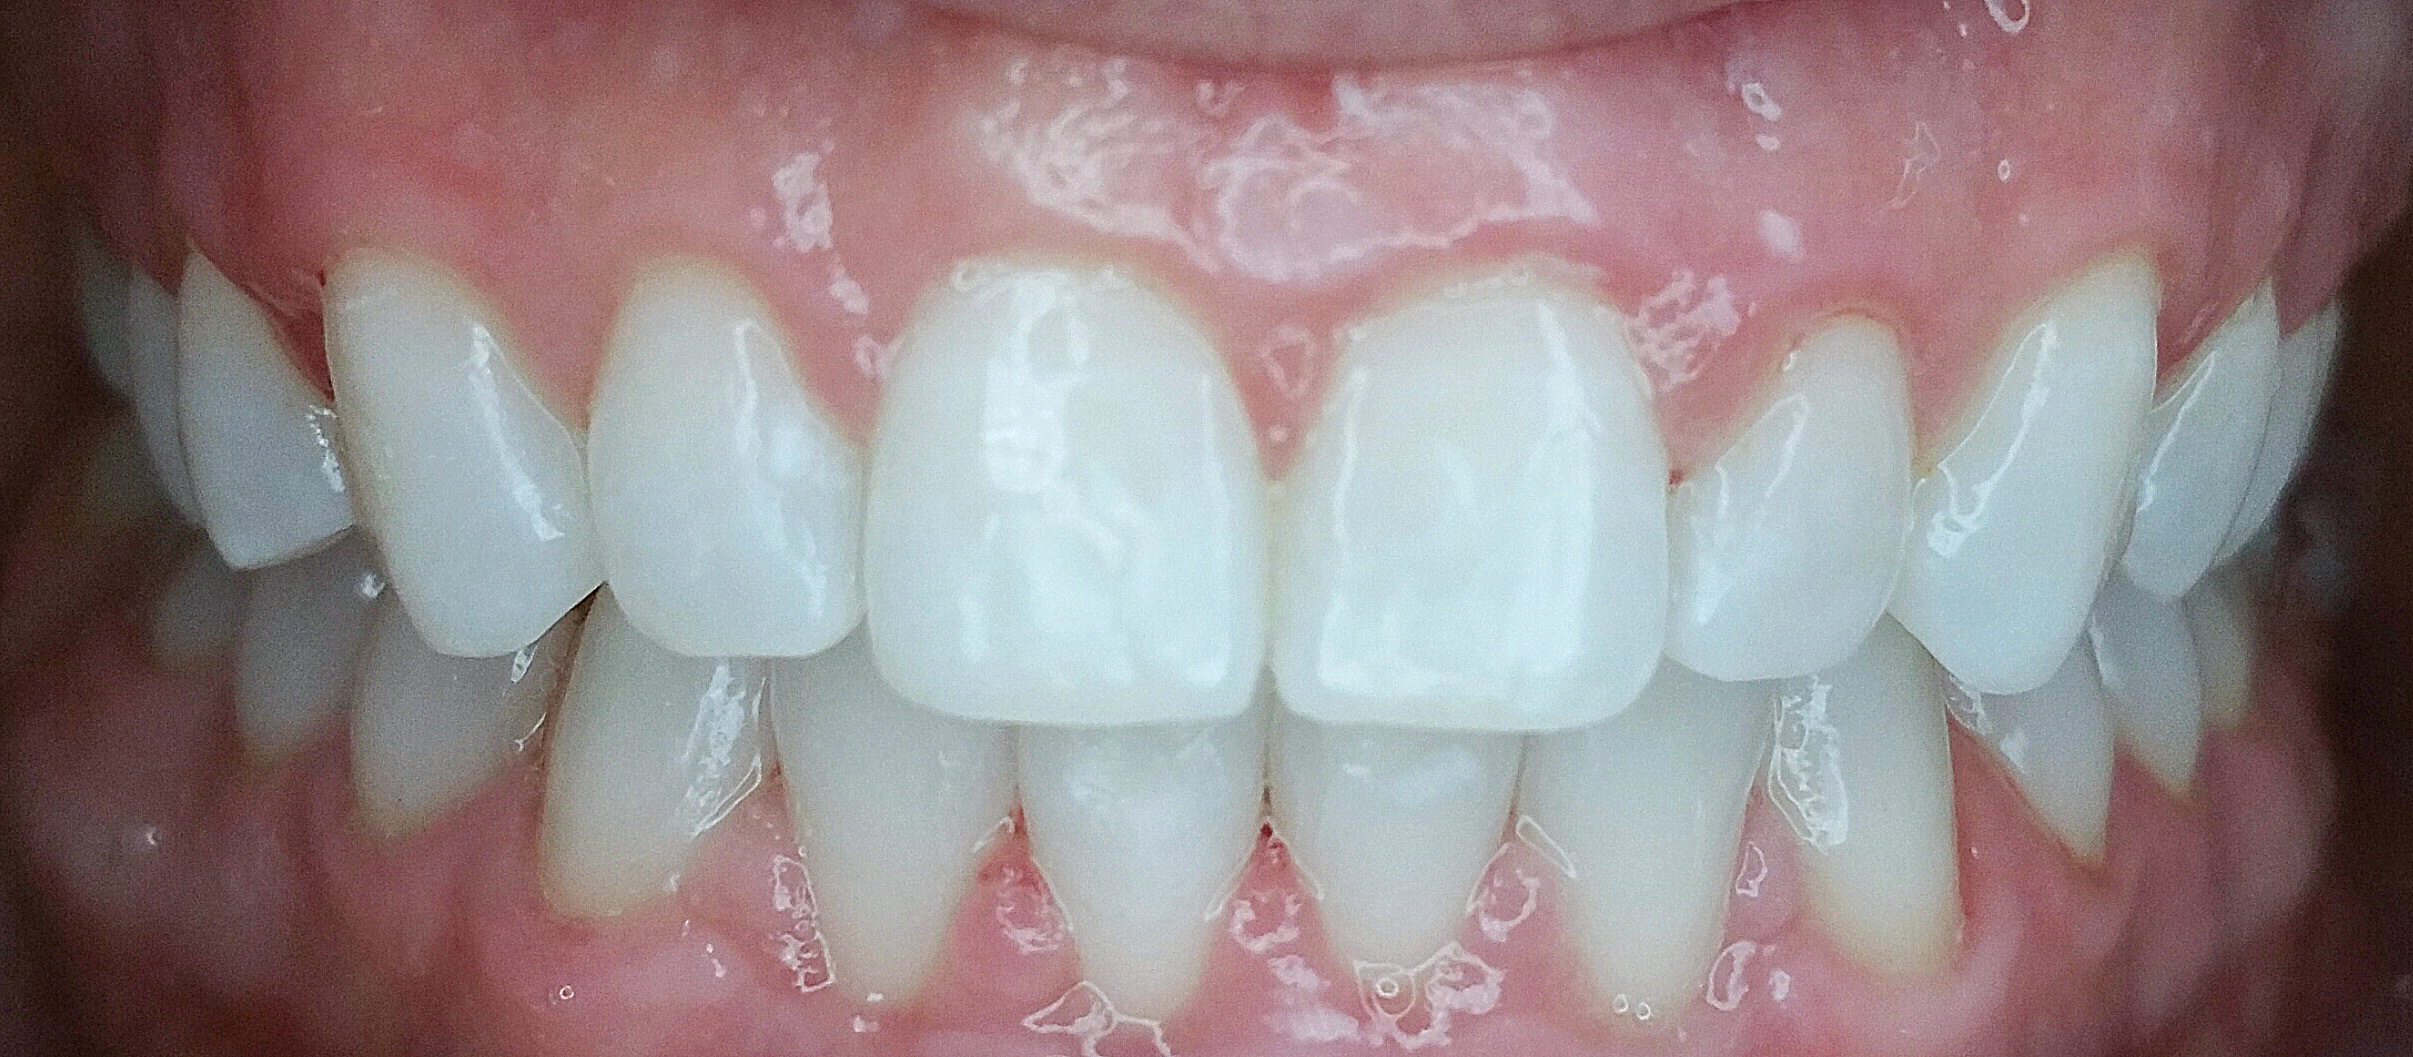 PowerProx 6-month Braces Case 5 after